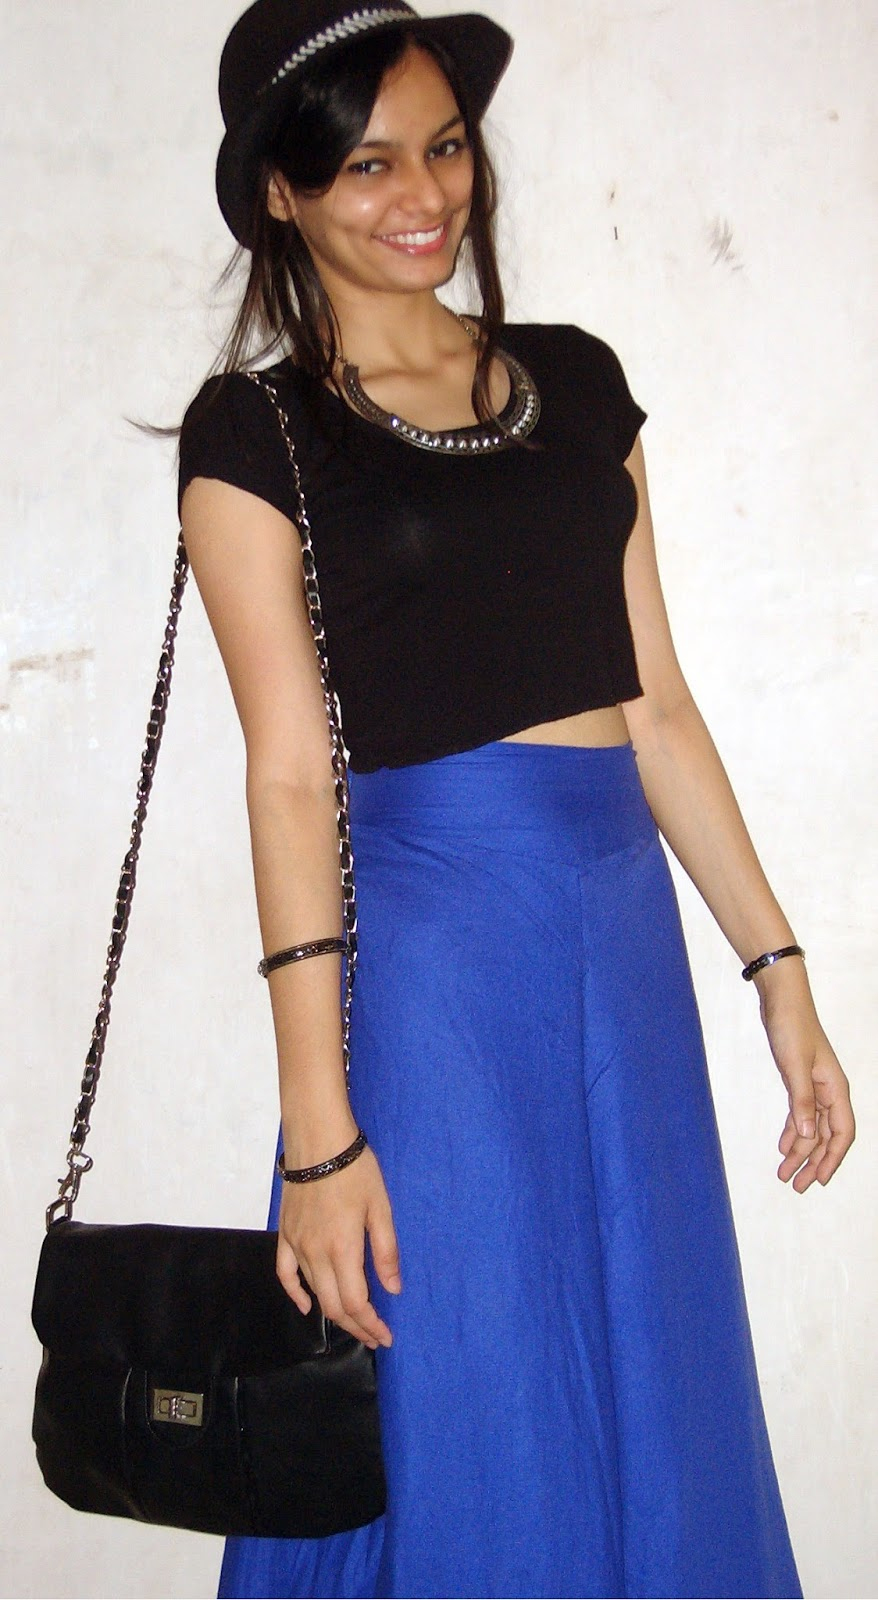 minimal dressing, spiked necklace, black bag, look for less, mumbai street shopping, what to buy in colaba, what to buy on linking road, what to buy in mumbai, palazzo pants, blue and black croptop